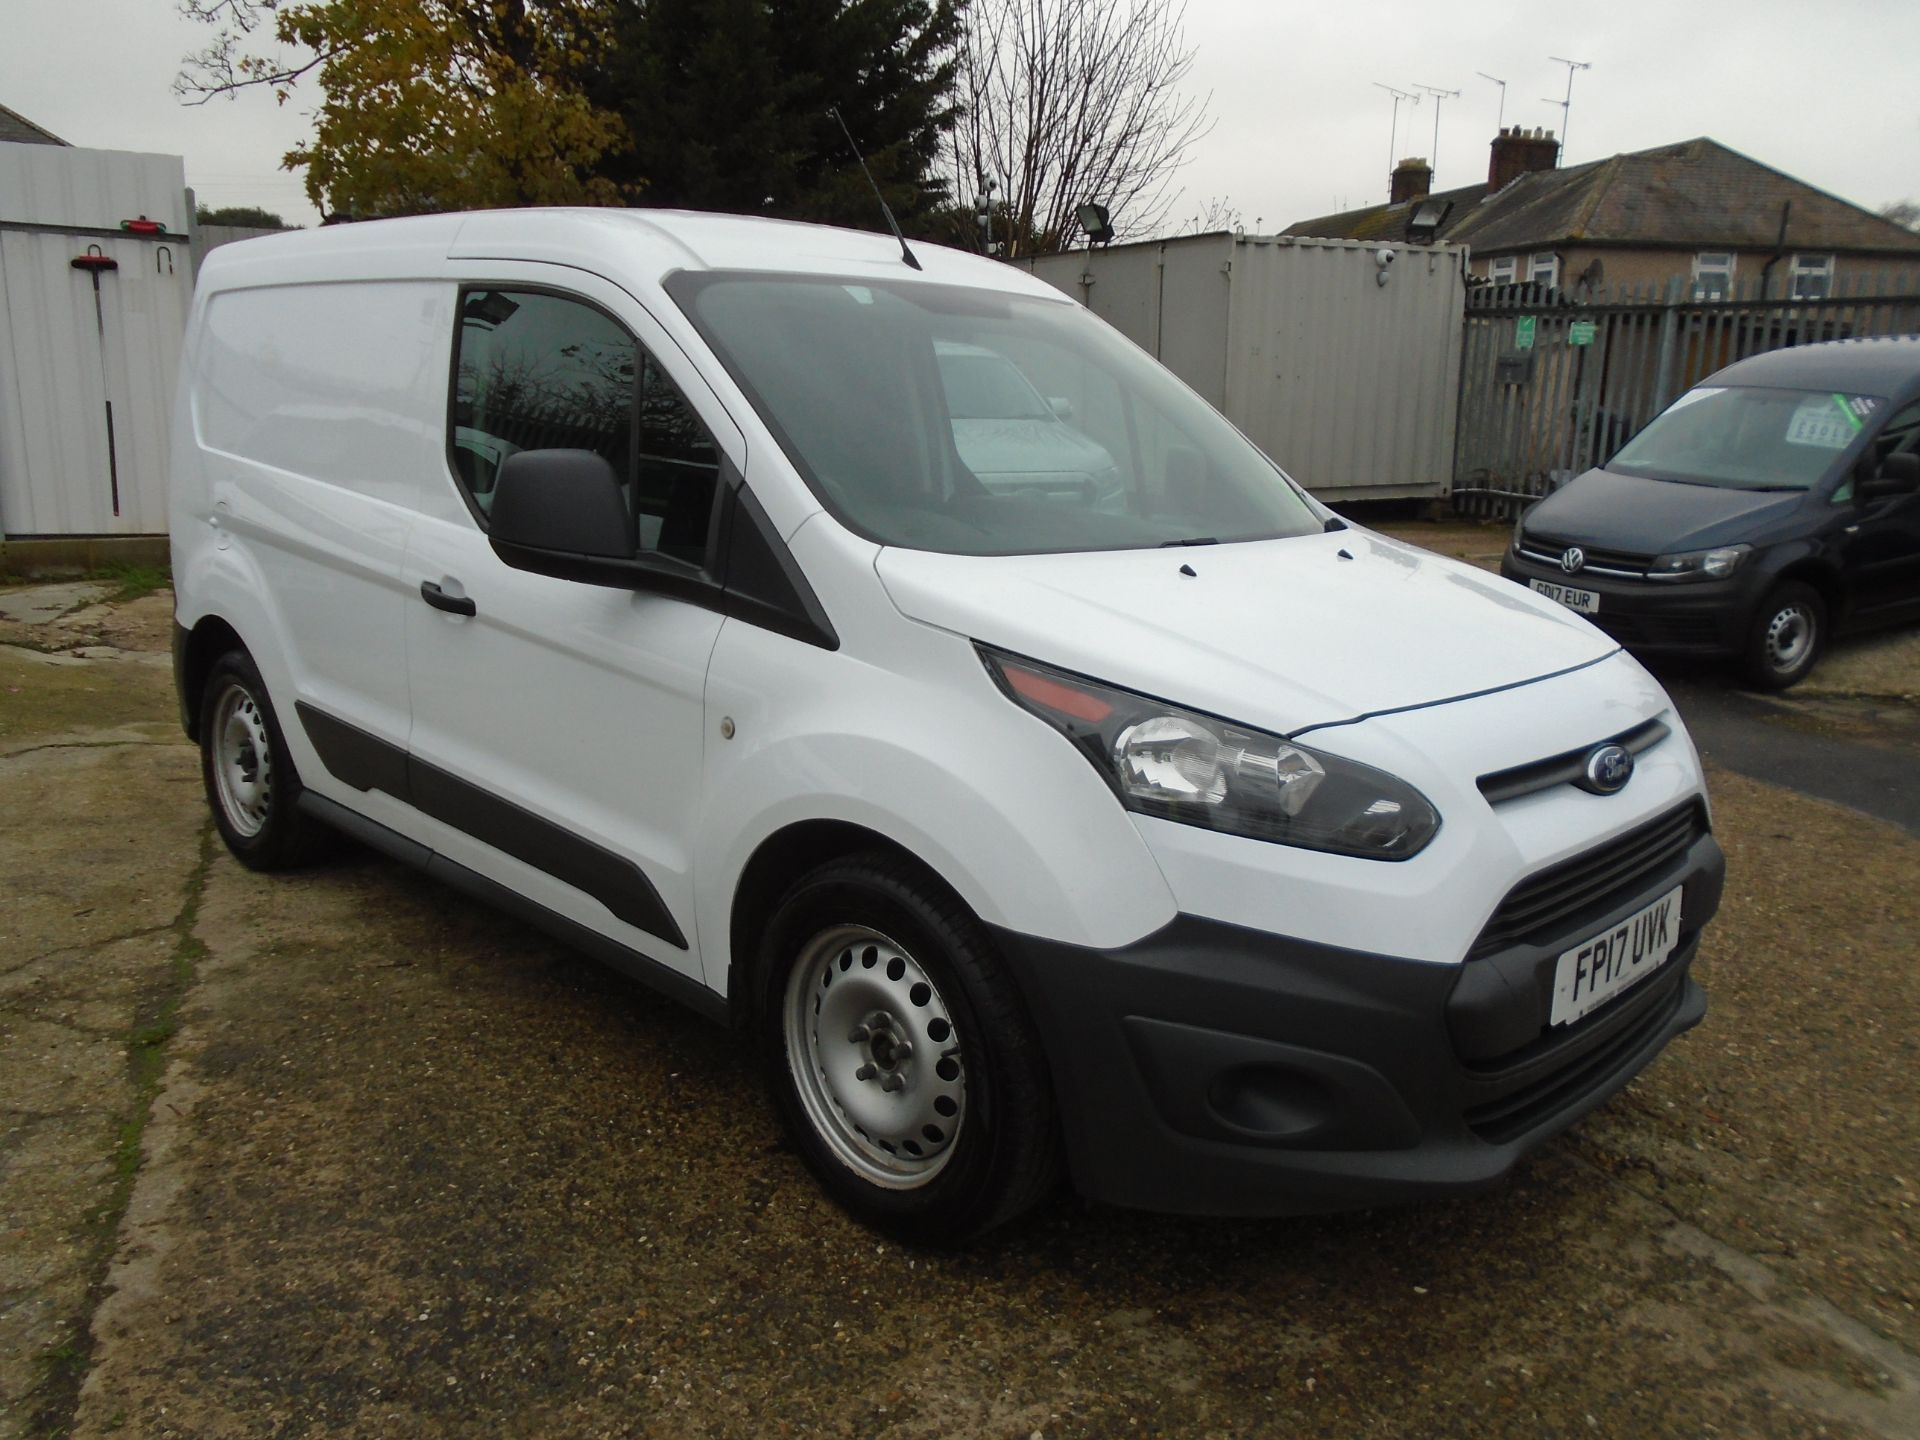 2017 Ford Transit Connect 1.5 Tdci 75Ps Van EURO 6 (FP17UVK) Image 1